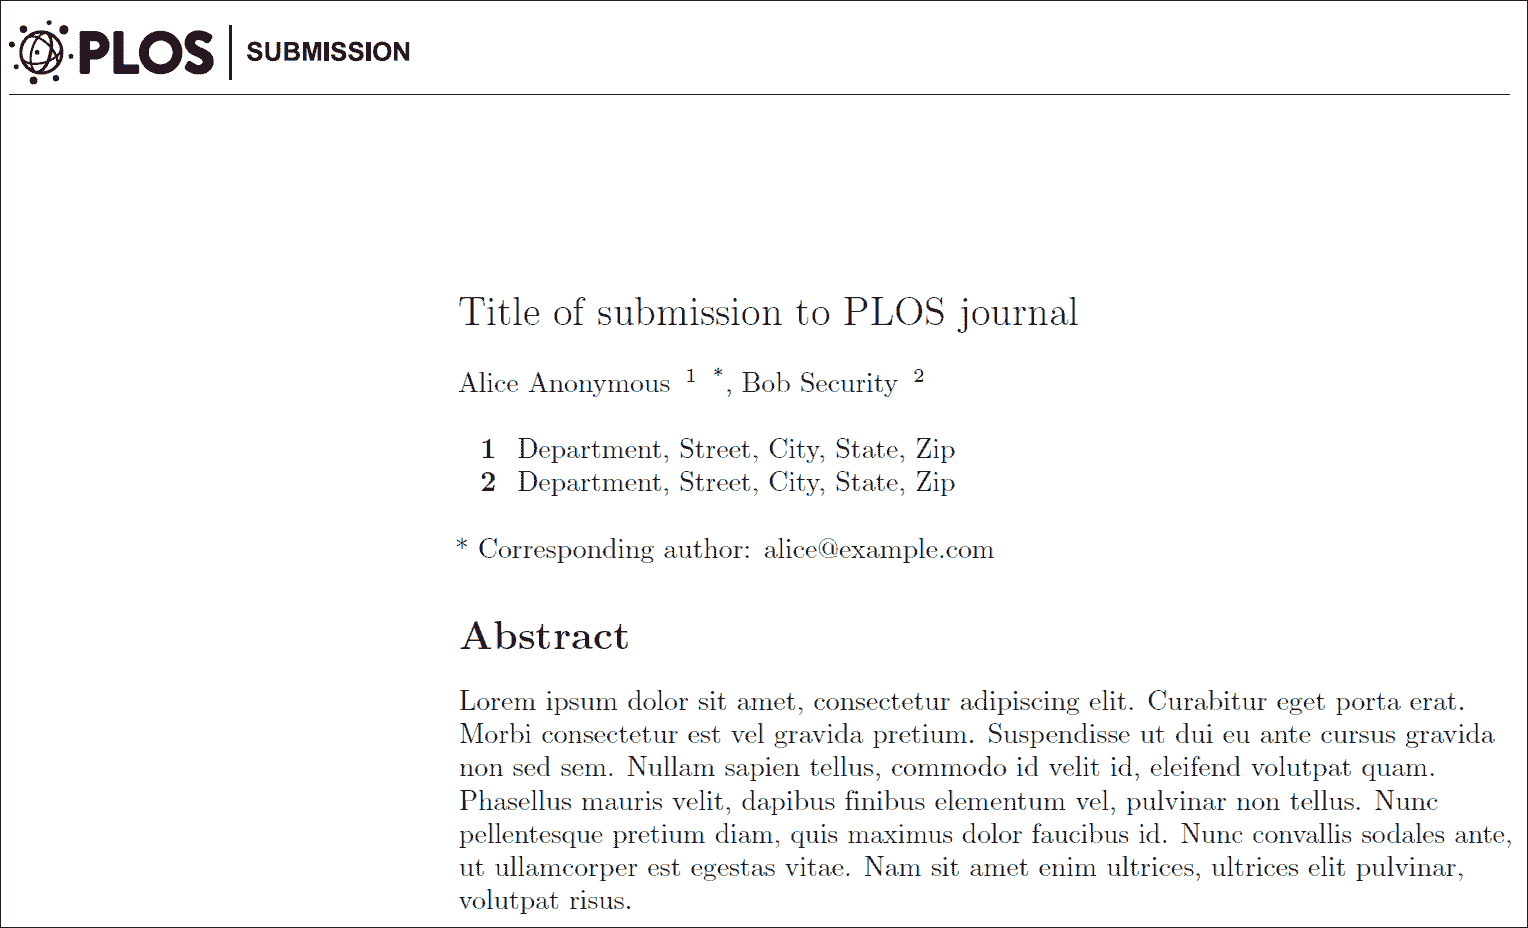 Chapter 13 Journals | R Markdown: The Definitive Guide